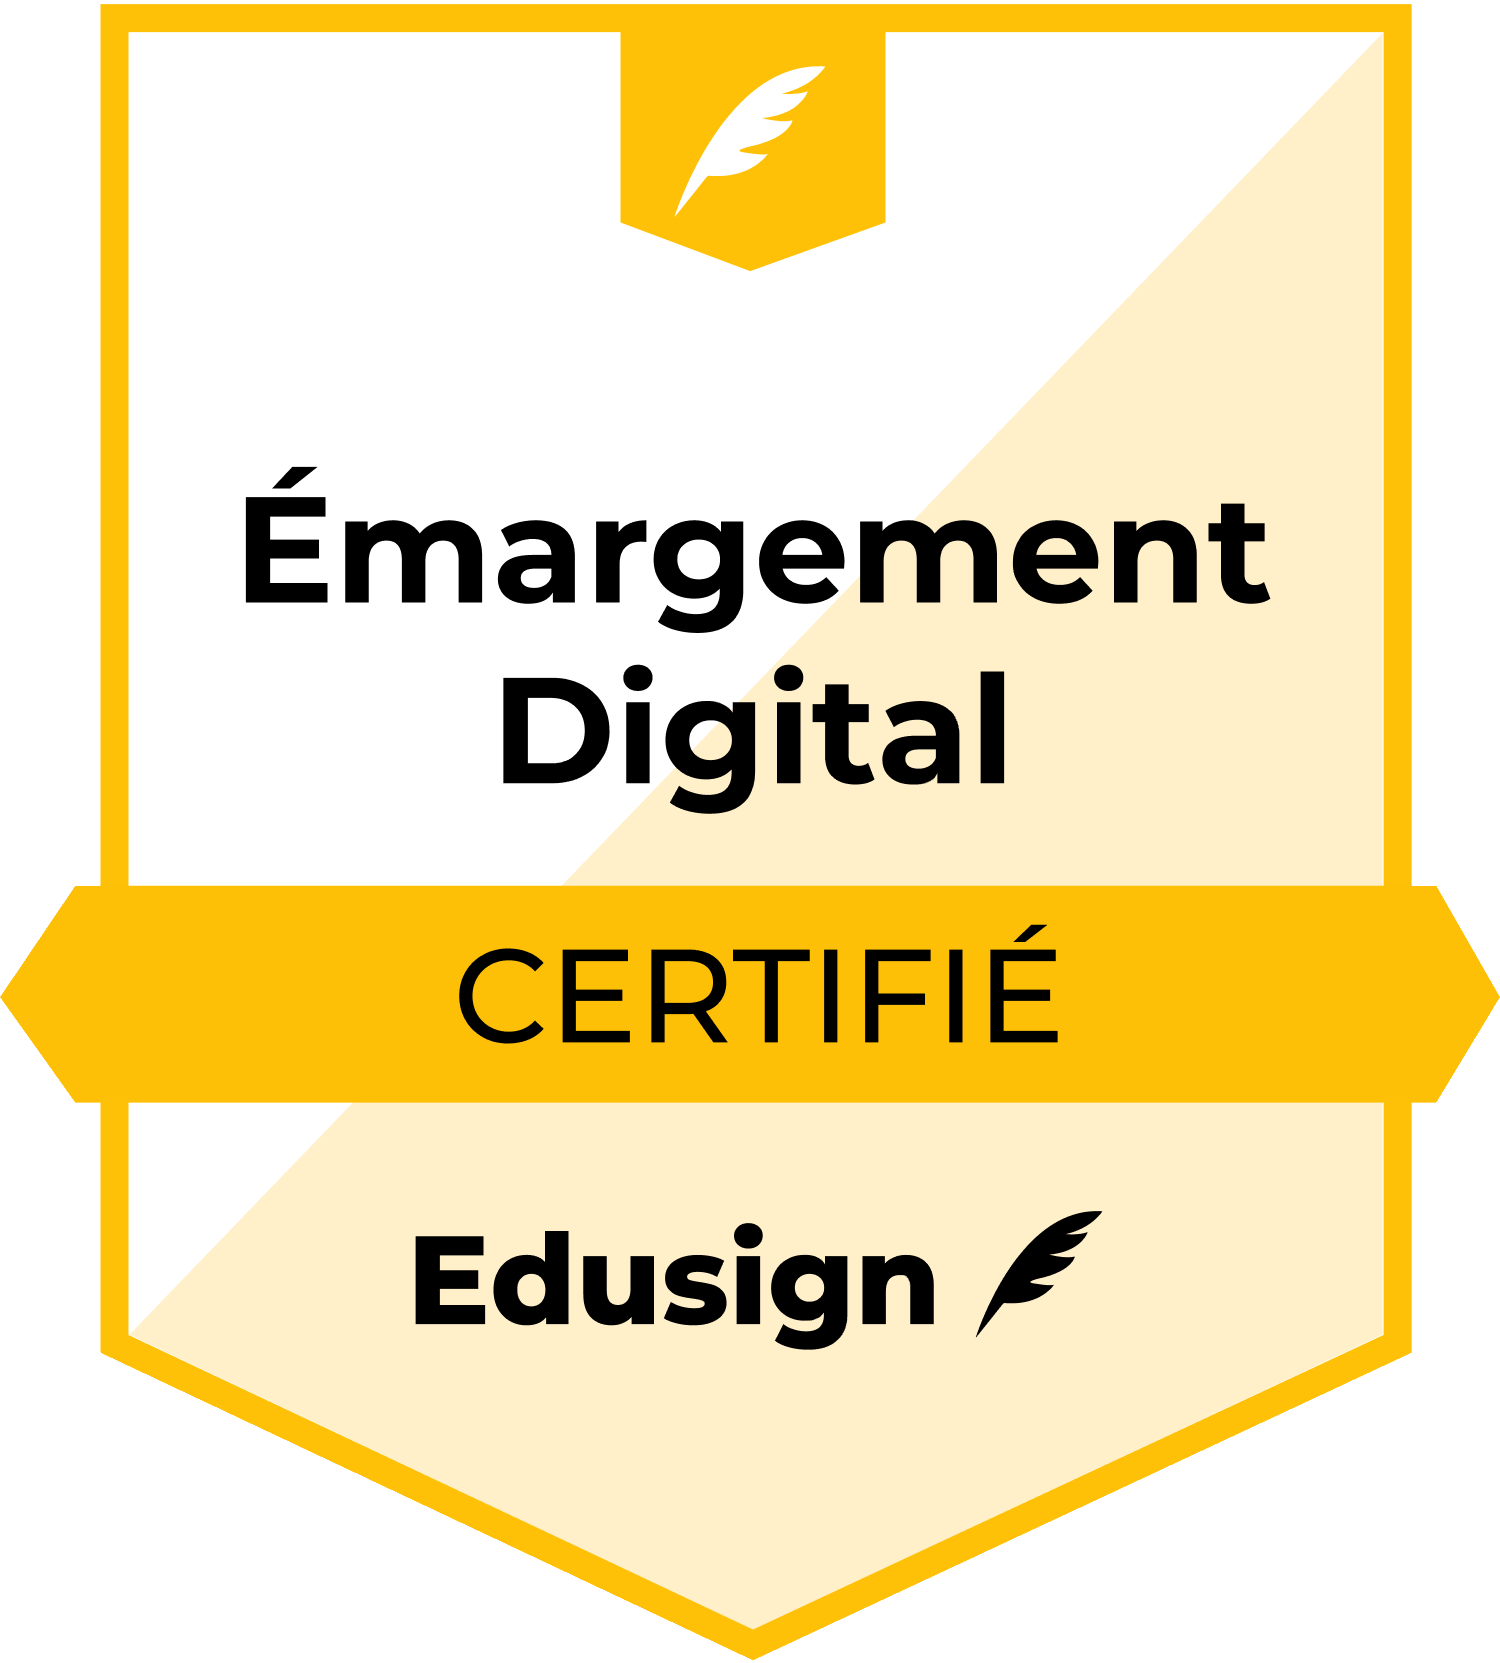 Signature Edusign